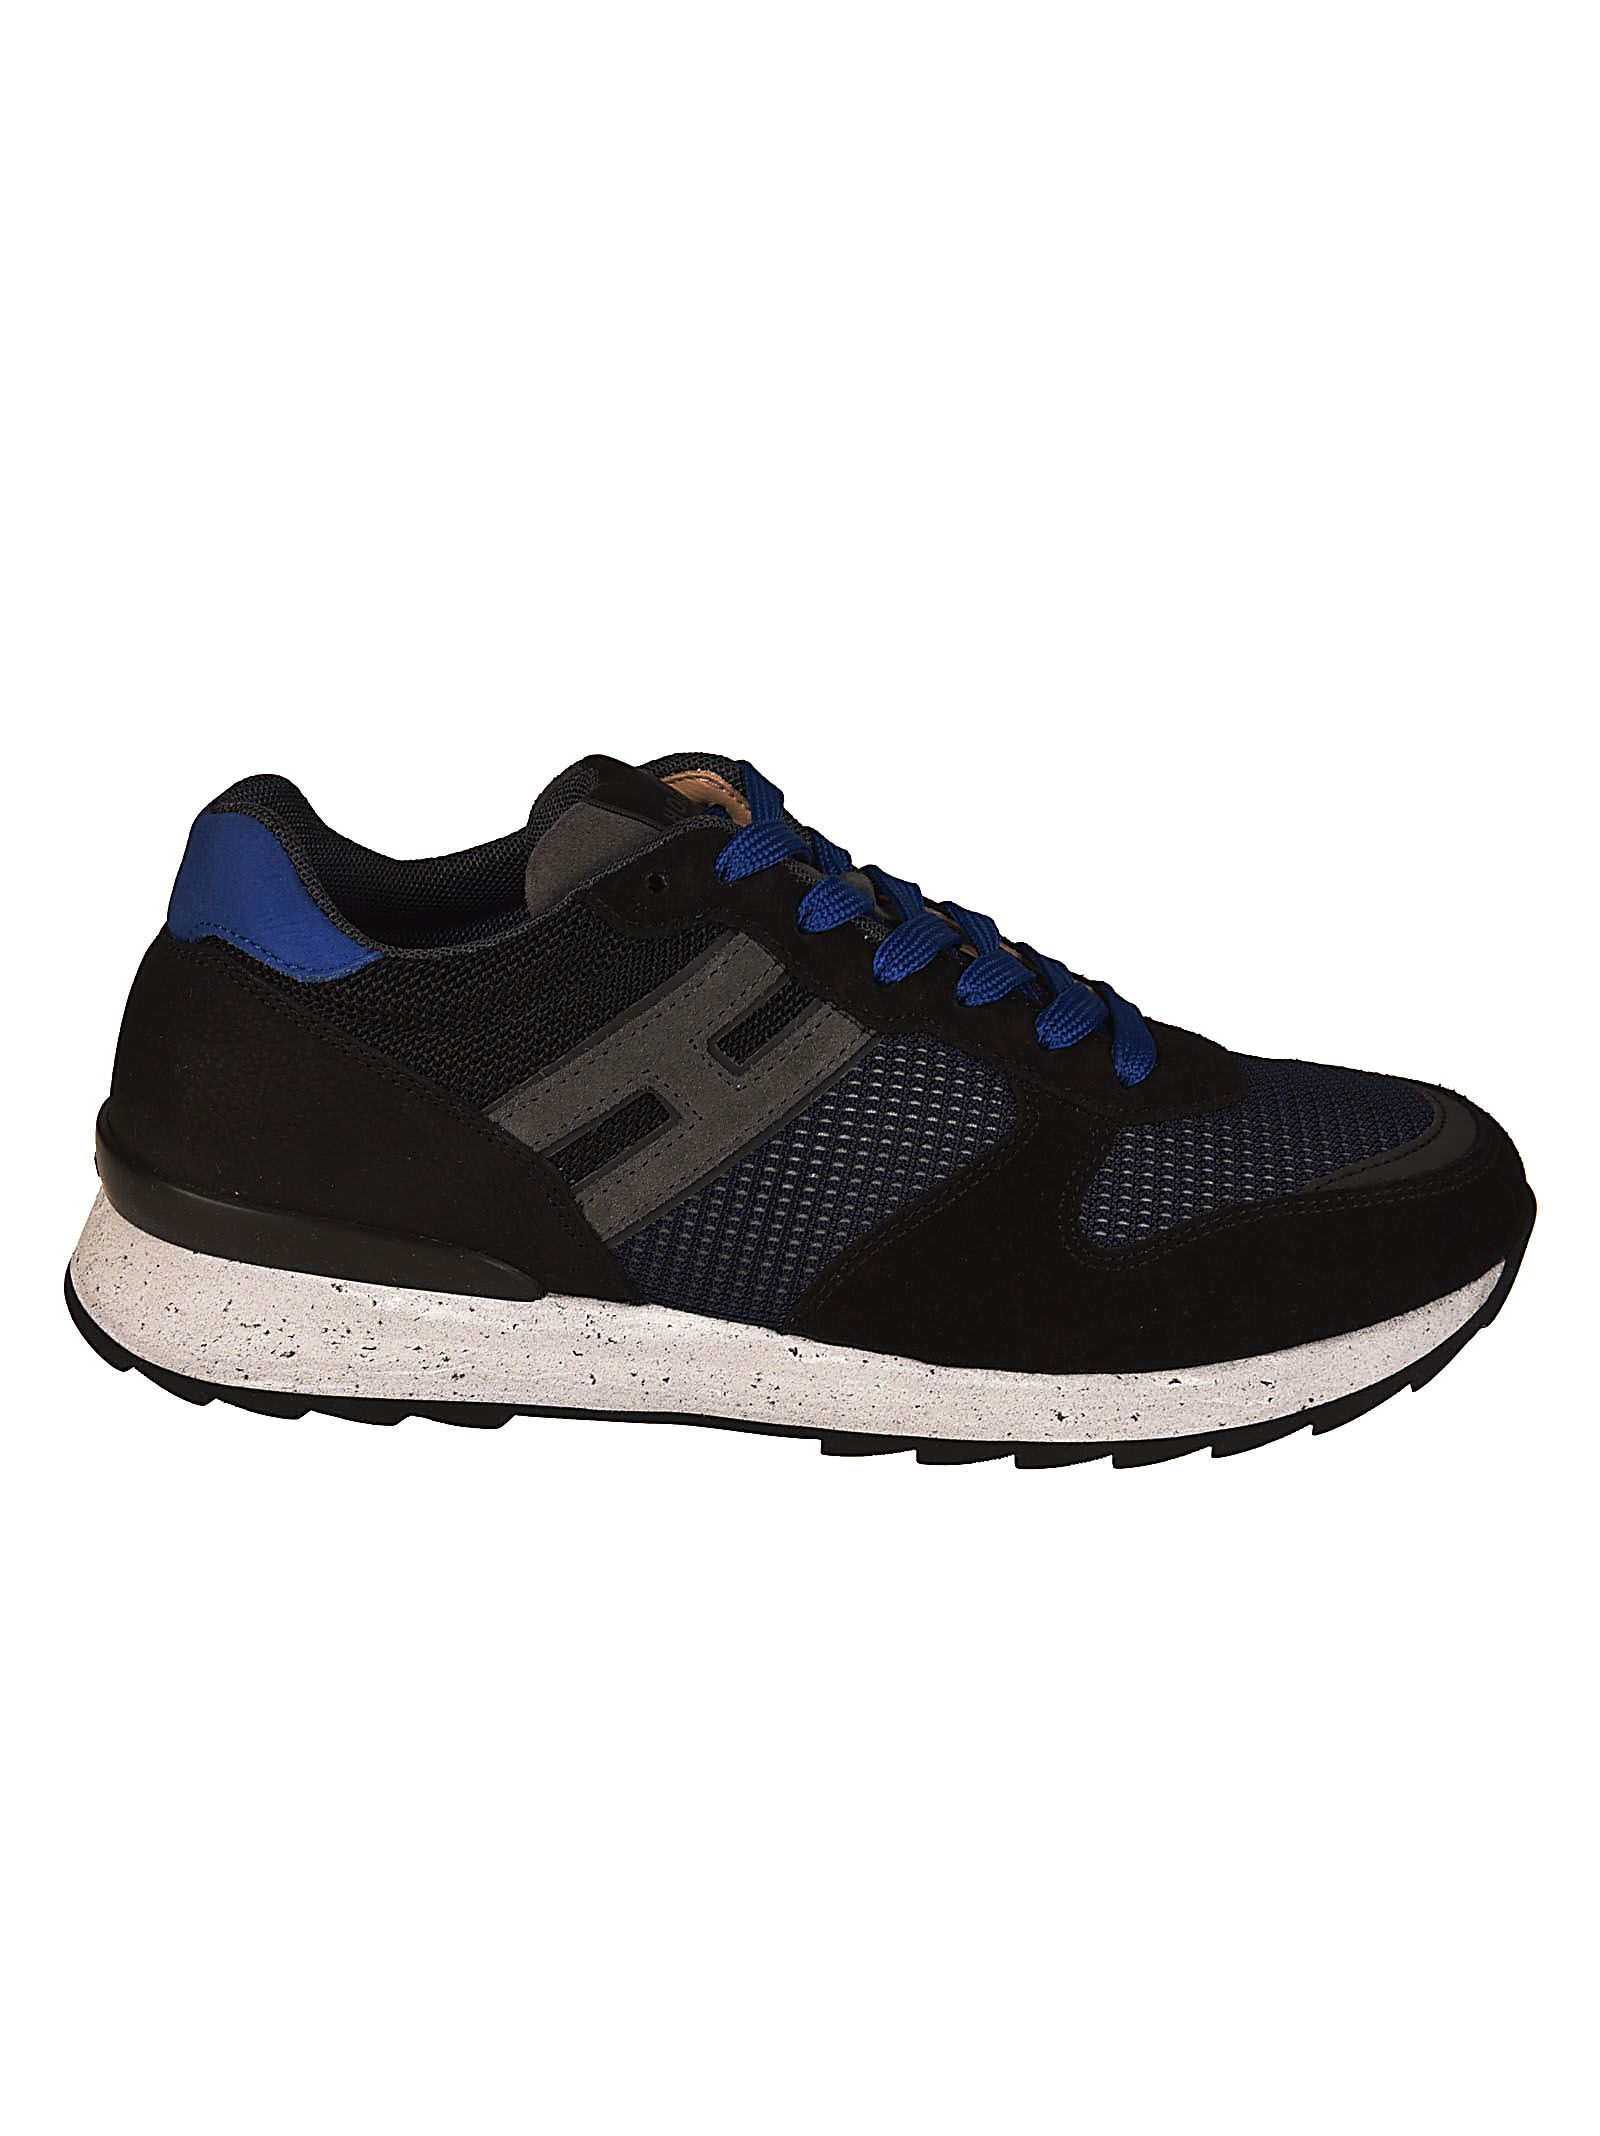 Hogan R261 lace-up sneakers get to buy choice online cheap shop buy cheap new E2eEuPn